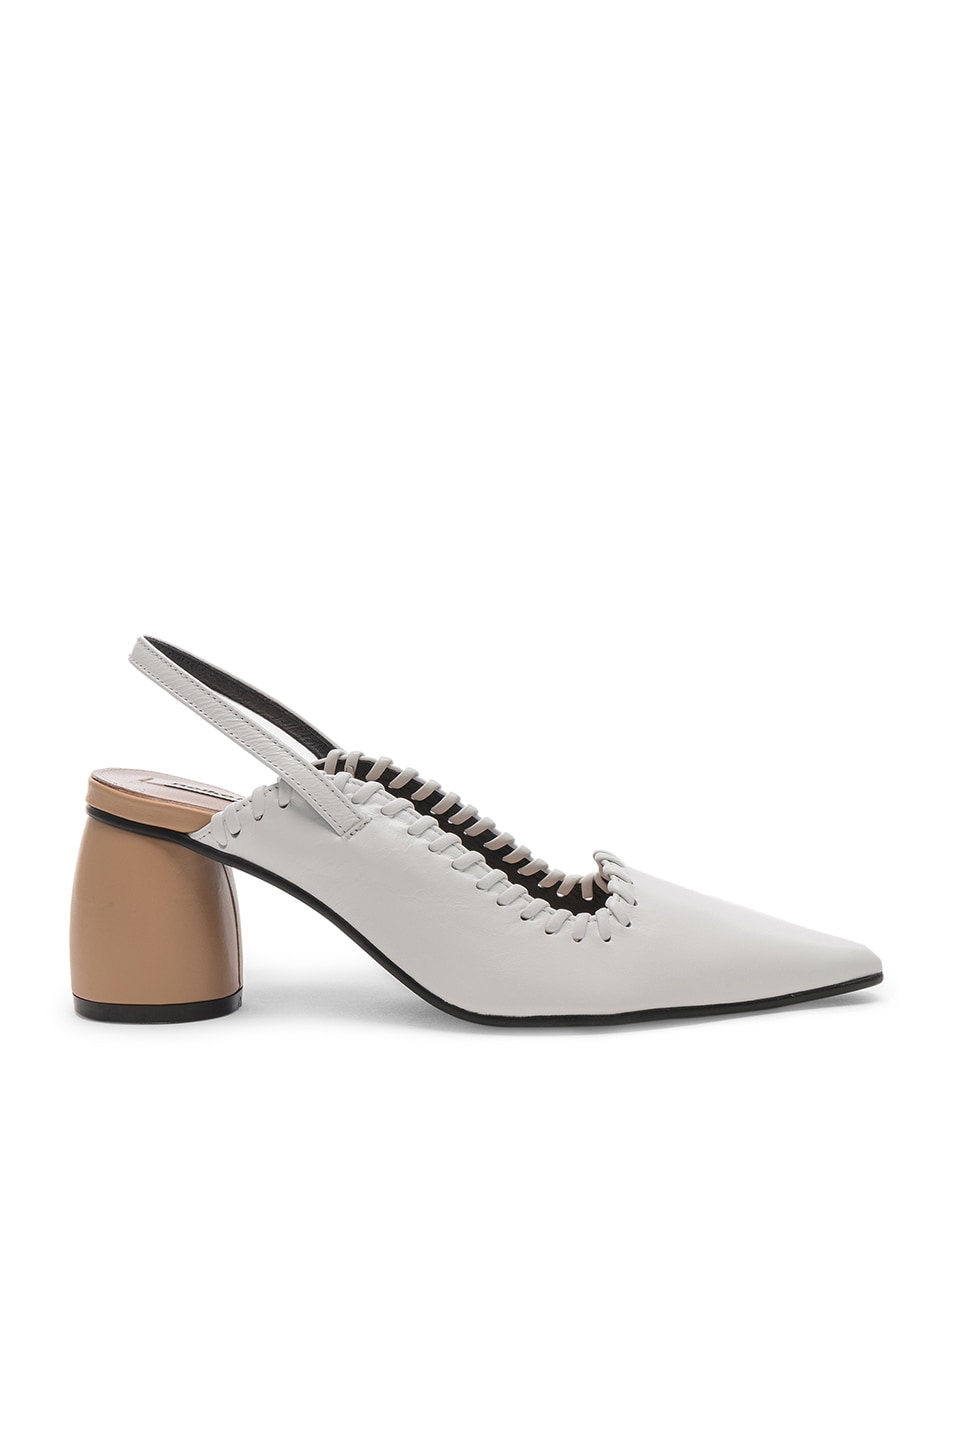 Image 1 of Reike Nen Curved Middle Slingback in White & Beige